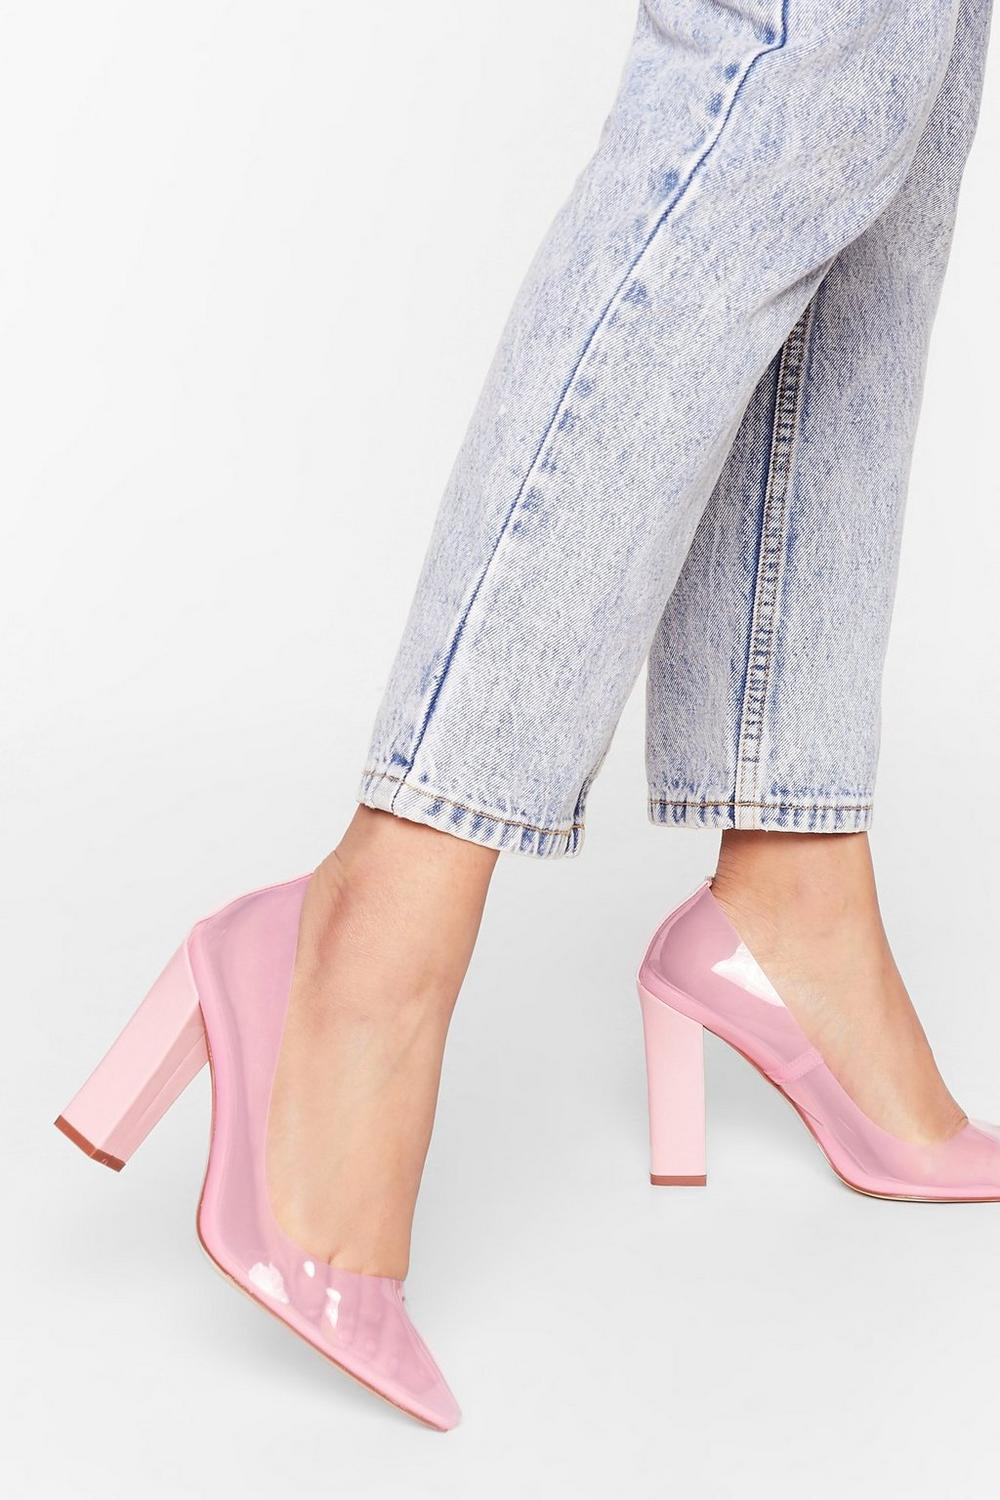 clearance great deals discount really Barbie Girl Perspex Court Heel eastbay cheap price sale with mastercard BwW3U9N6Jq